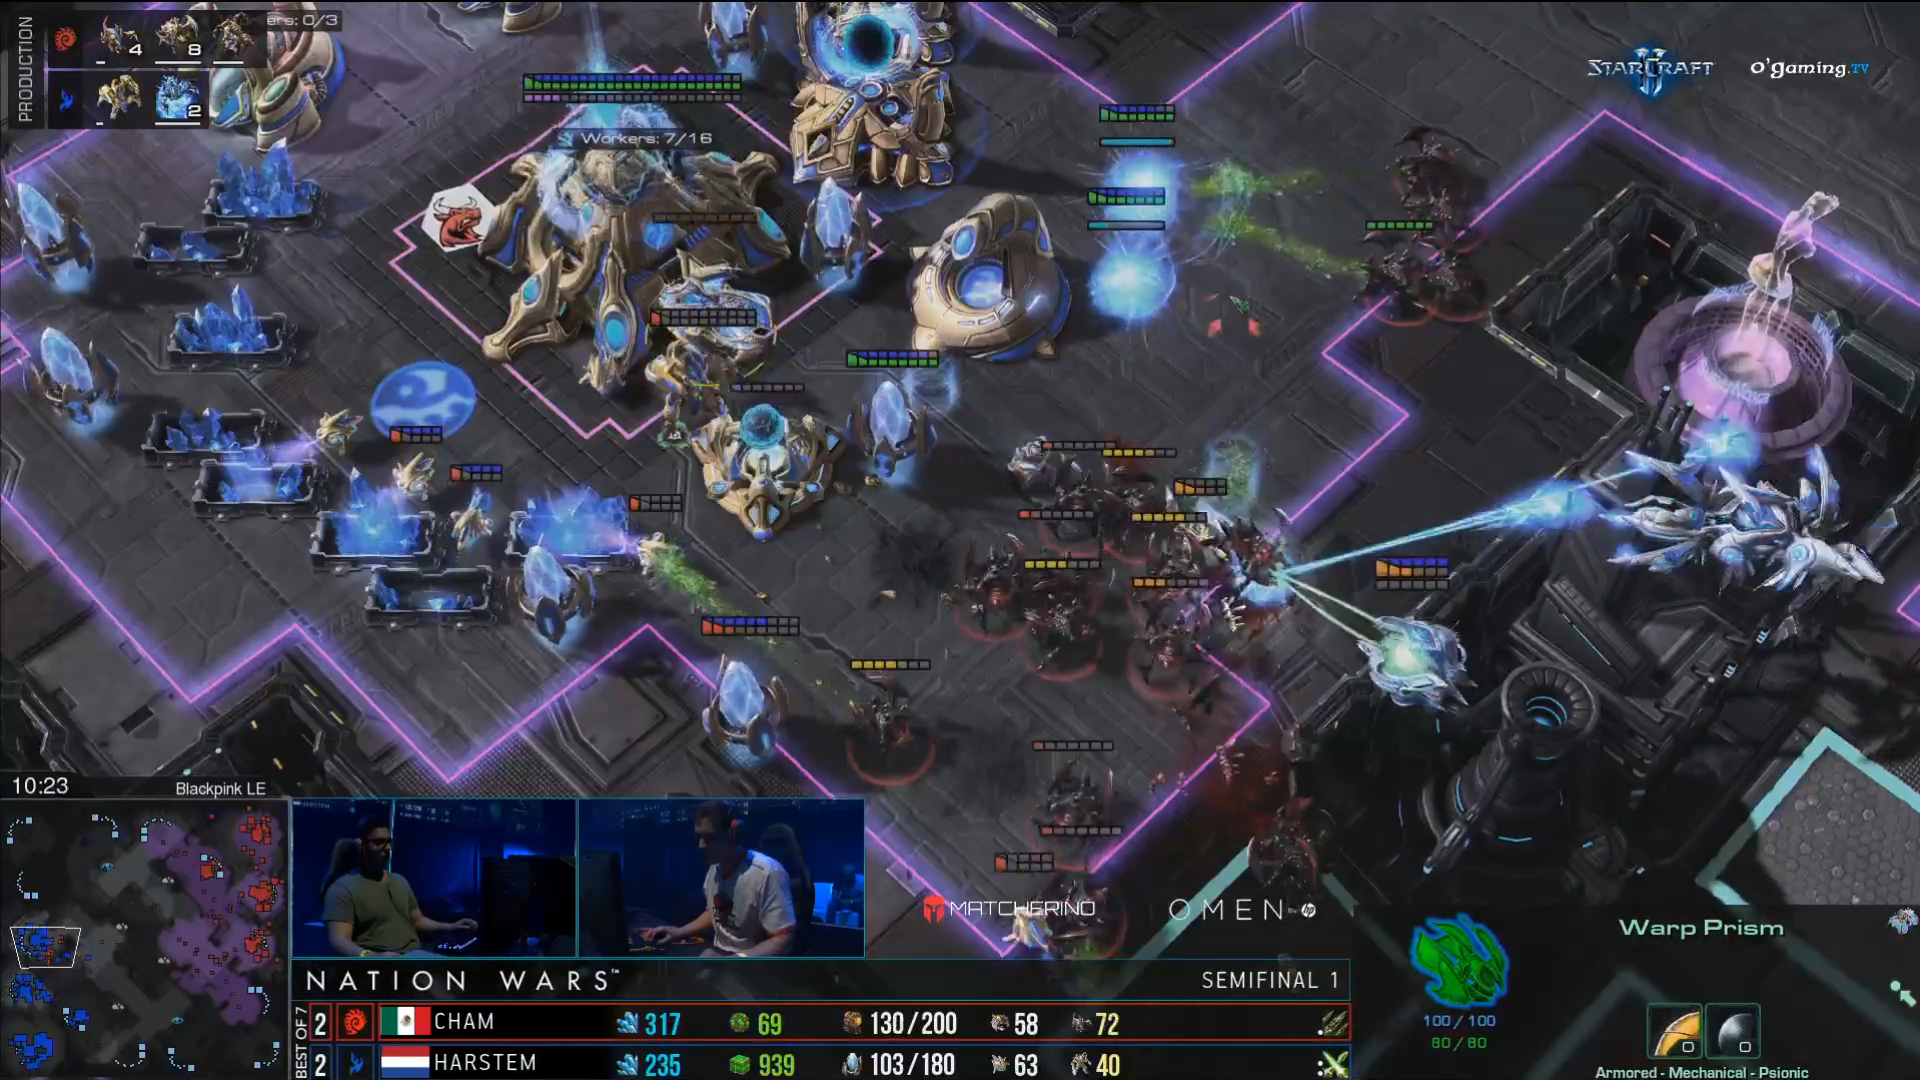 Take A Moment To Appreciate Some Brutal StarCraft Defence